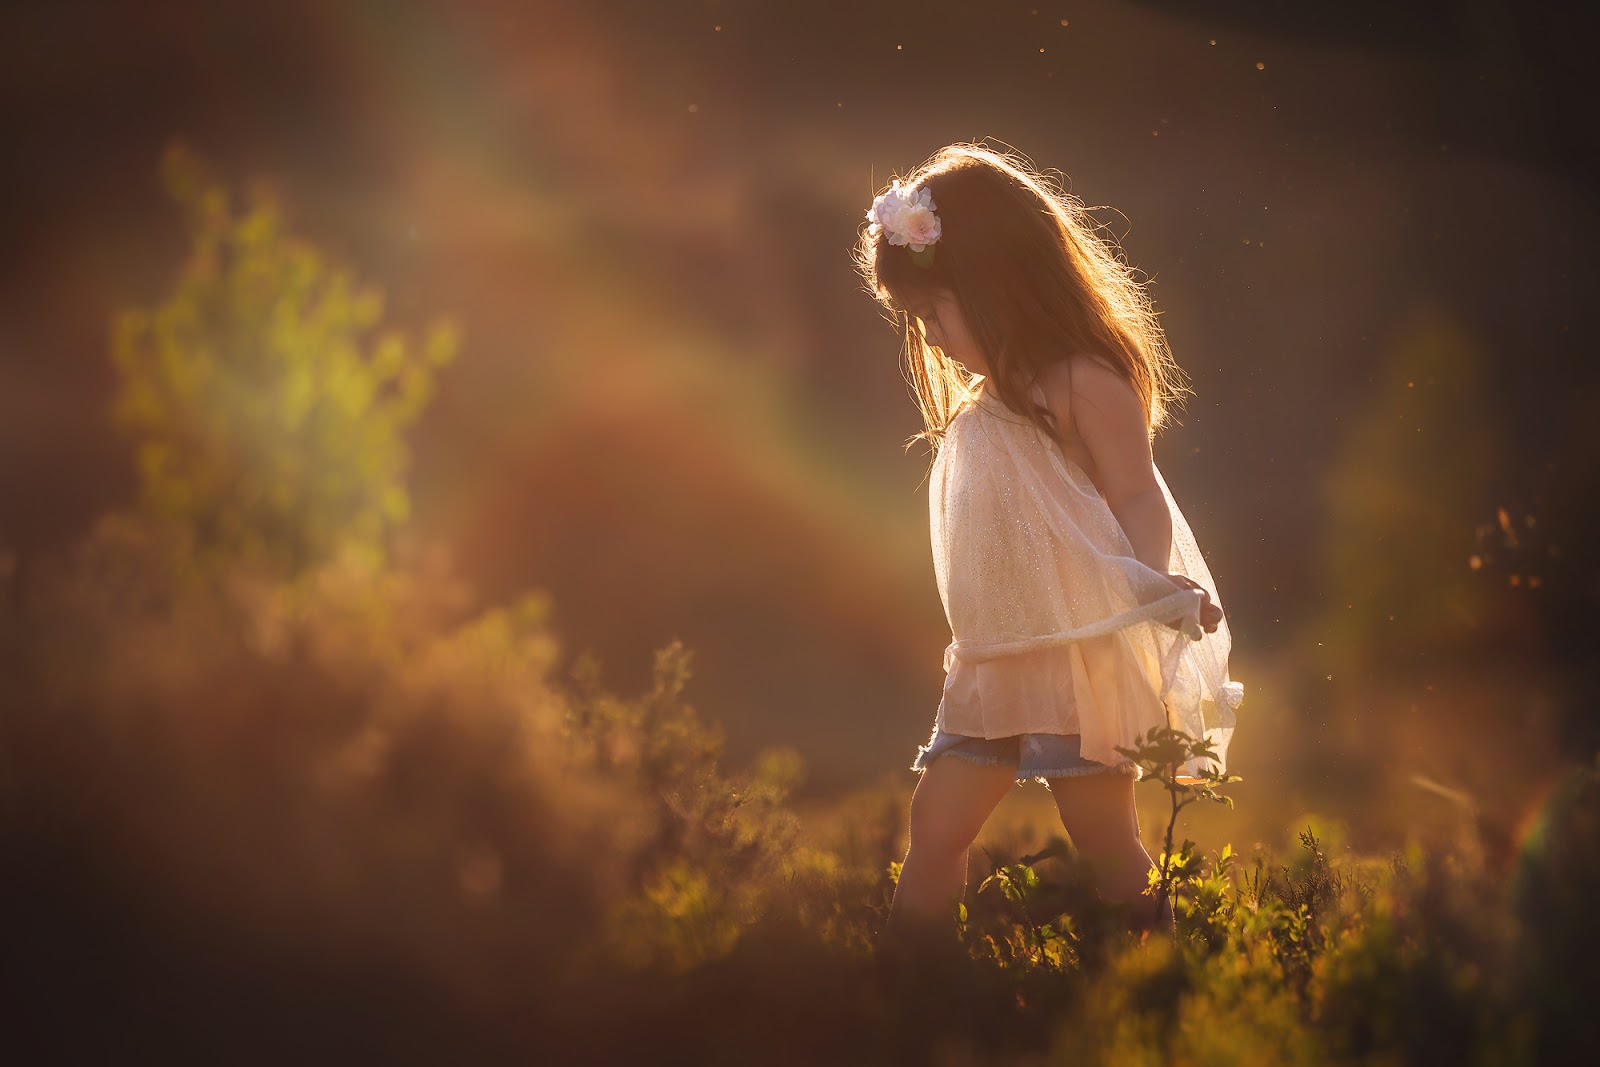 Sony A7RIII childhood portrait of a sweet little asian girl in a pink tutu dancing in the field during sunset with lensflare and a rainbow by Willie Kers